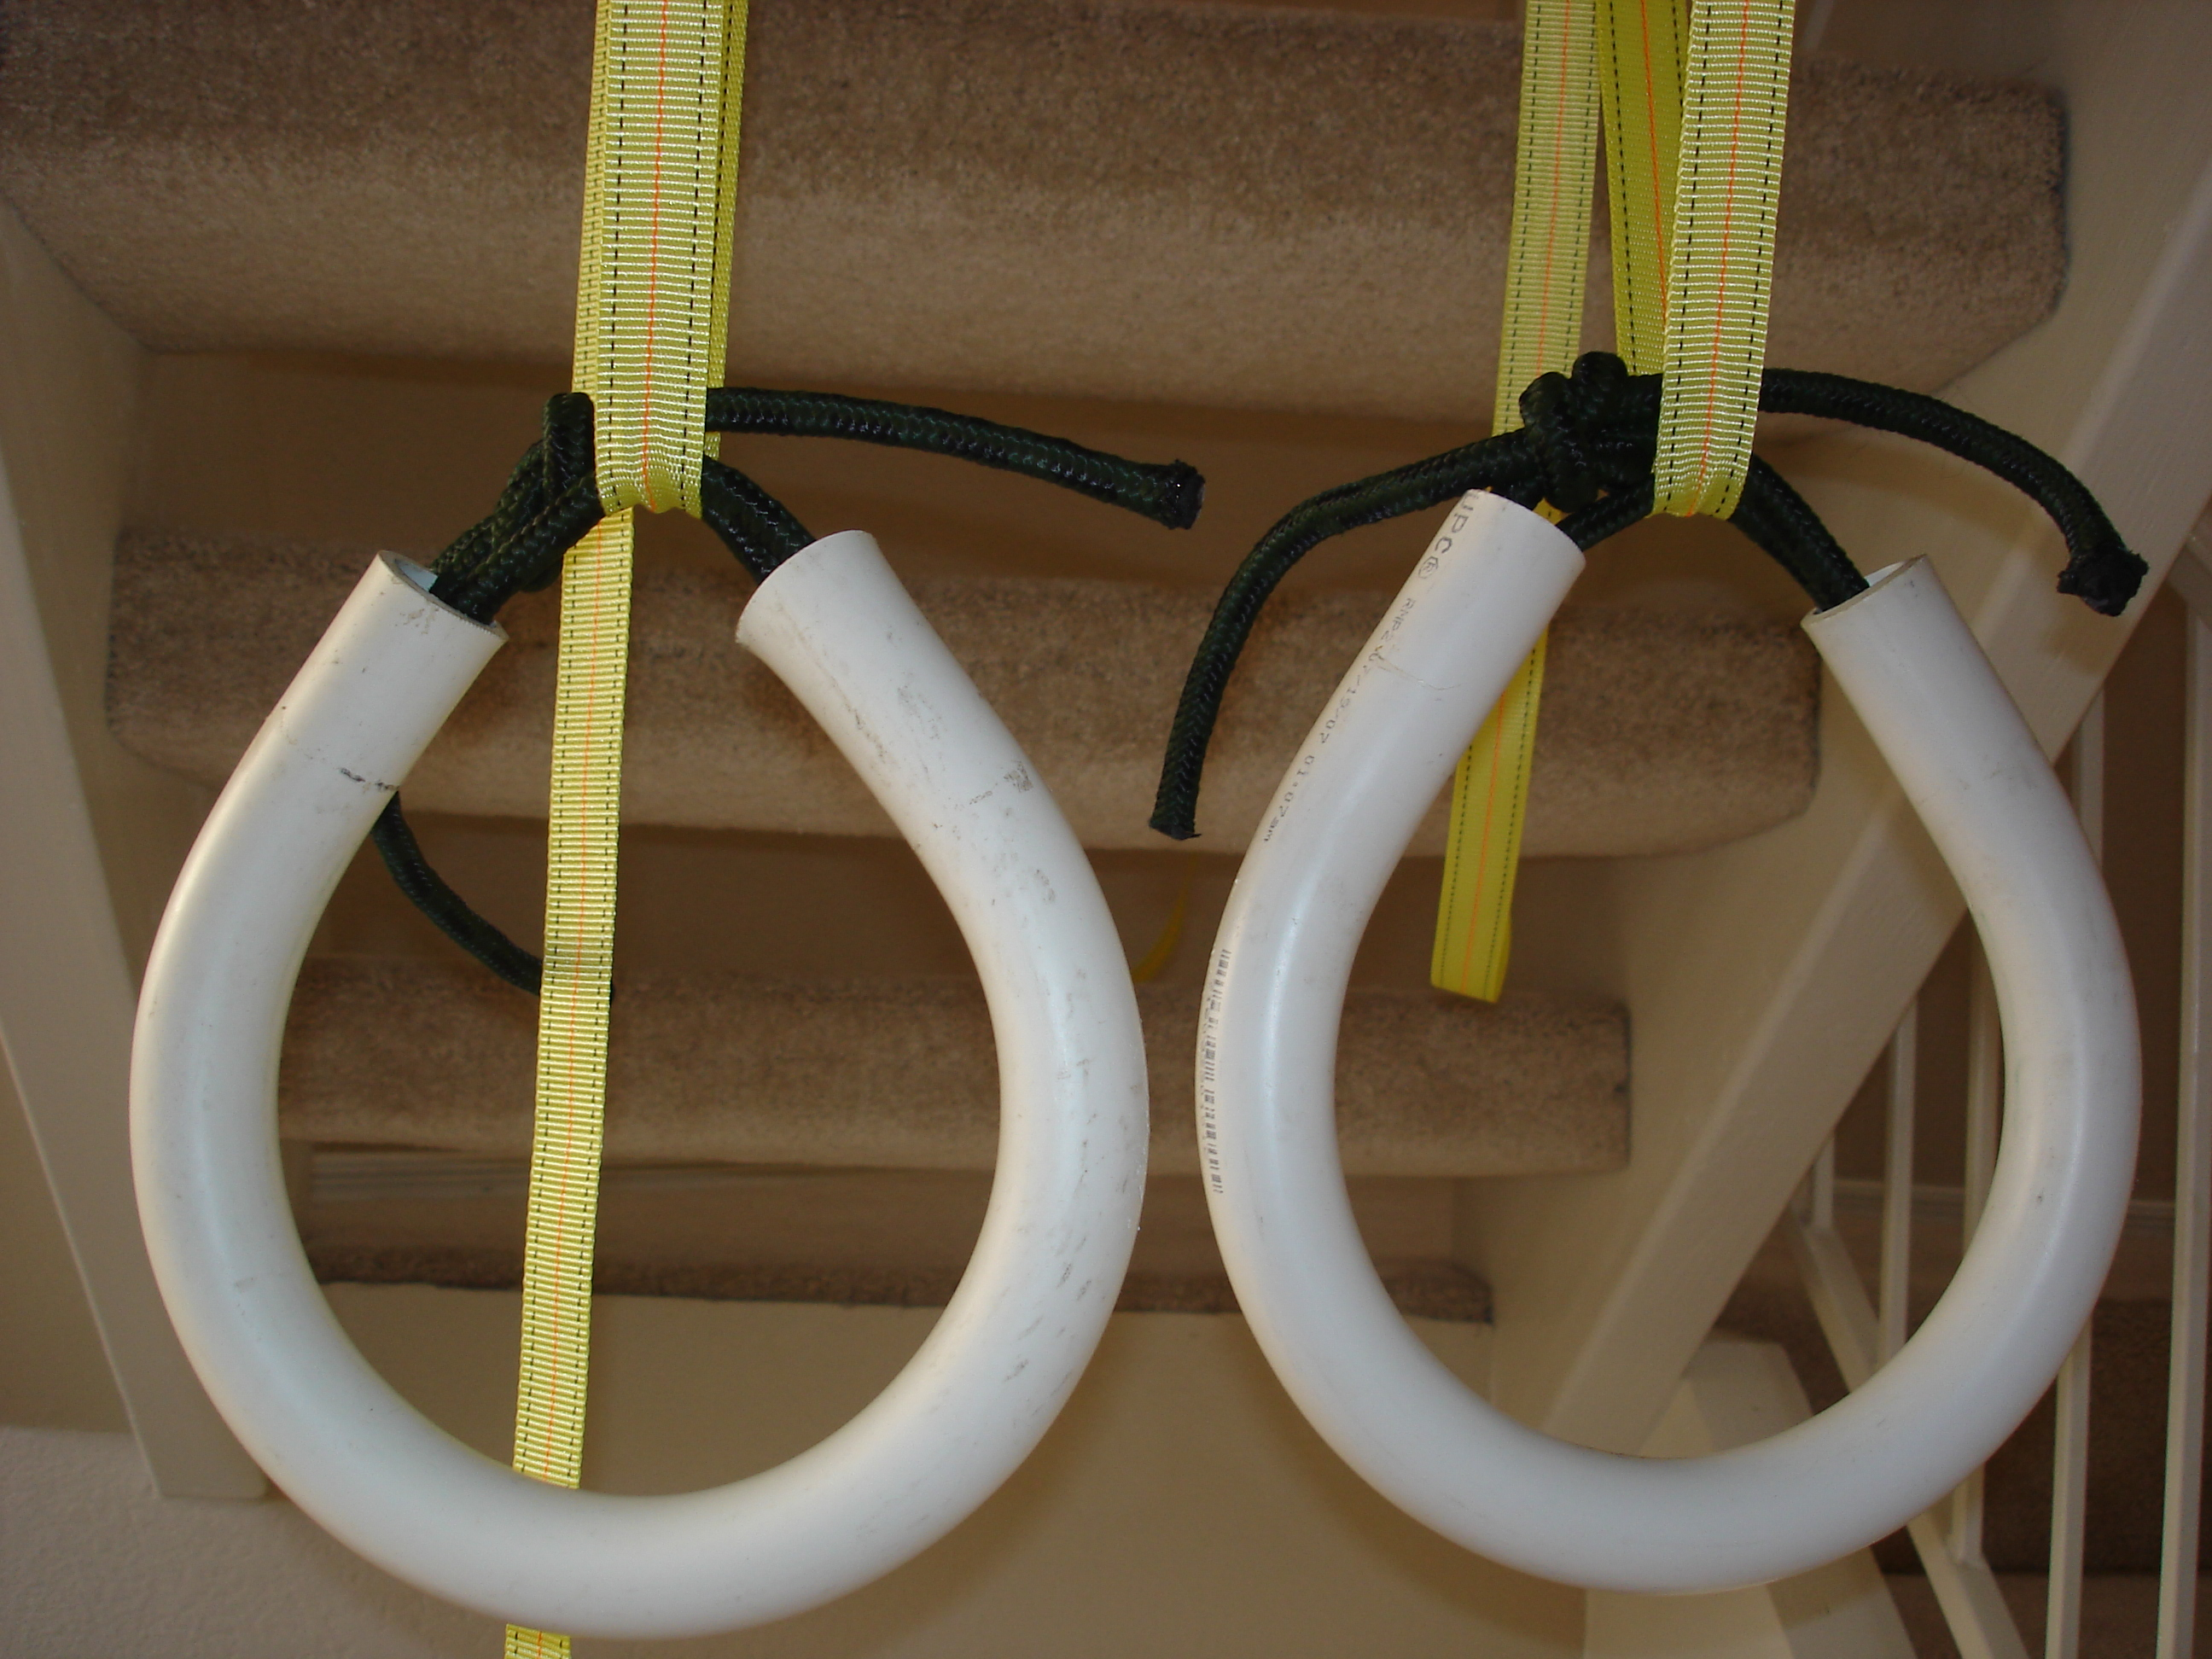 How to make PVC gymnastic/ fitness rings